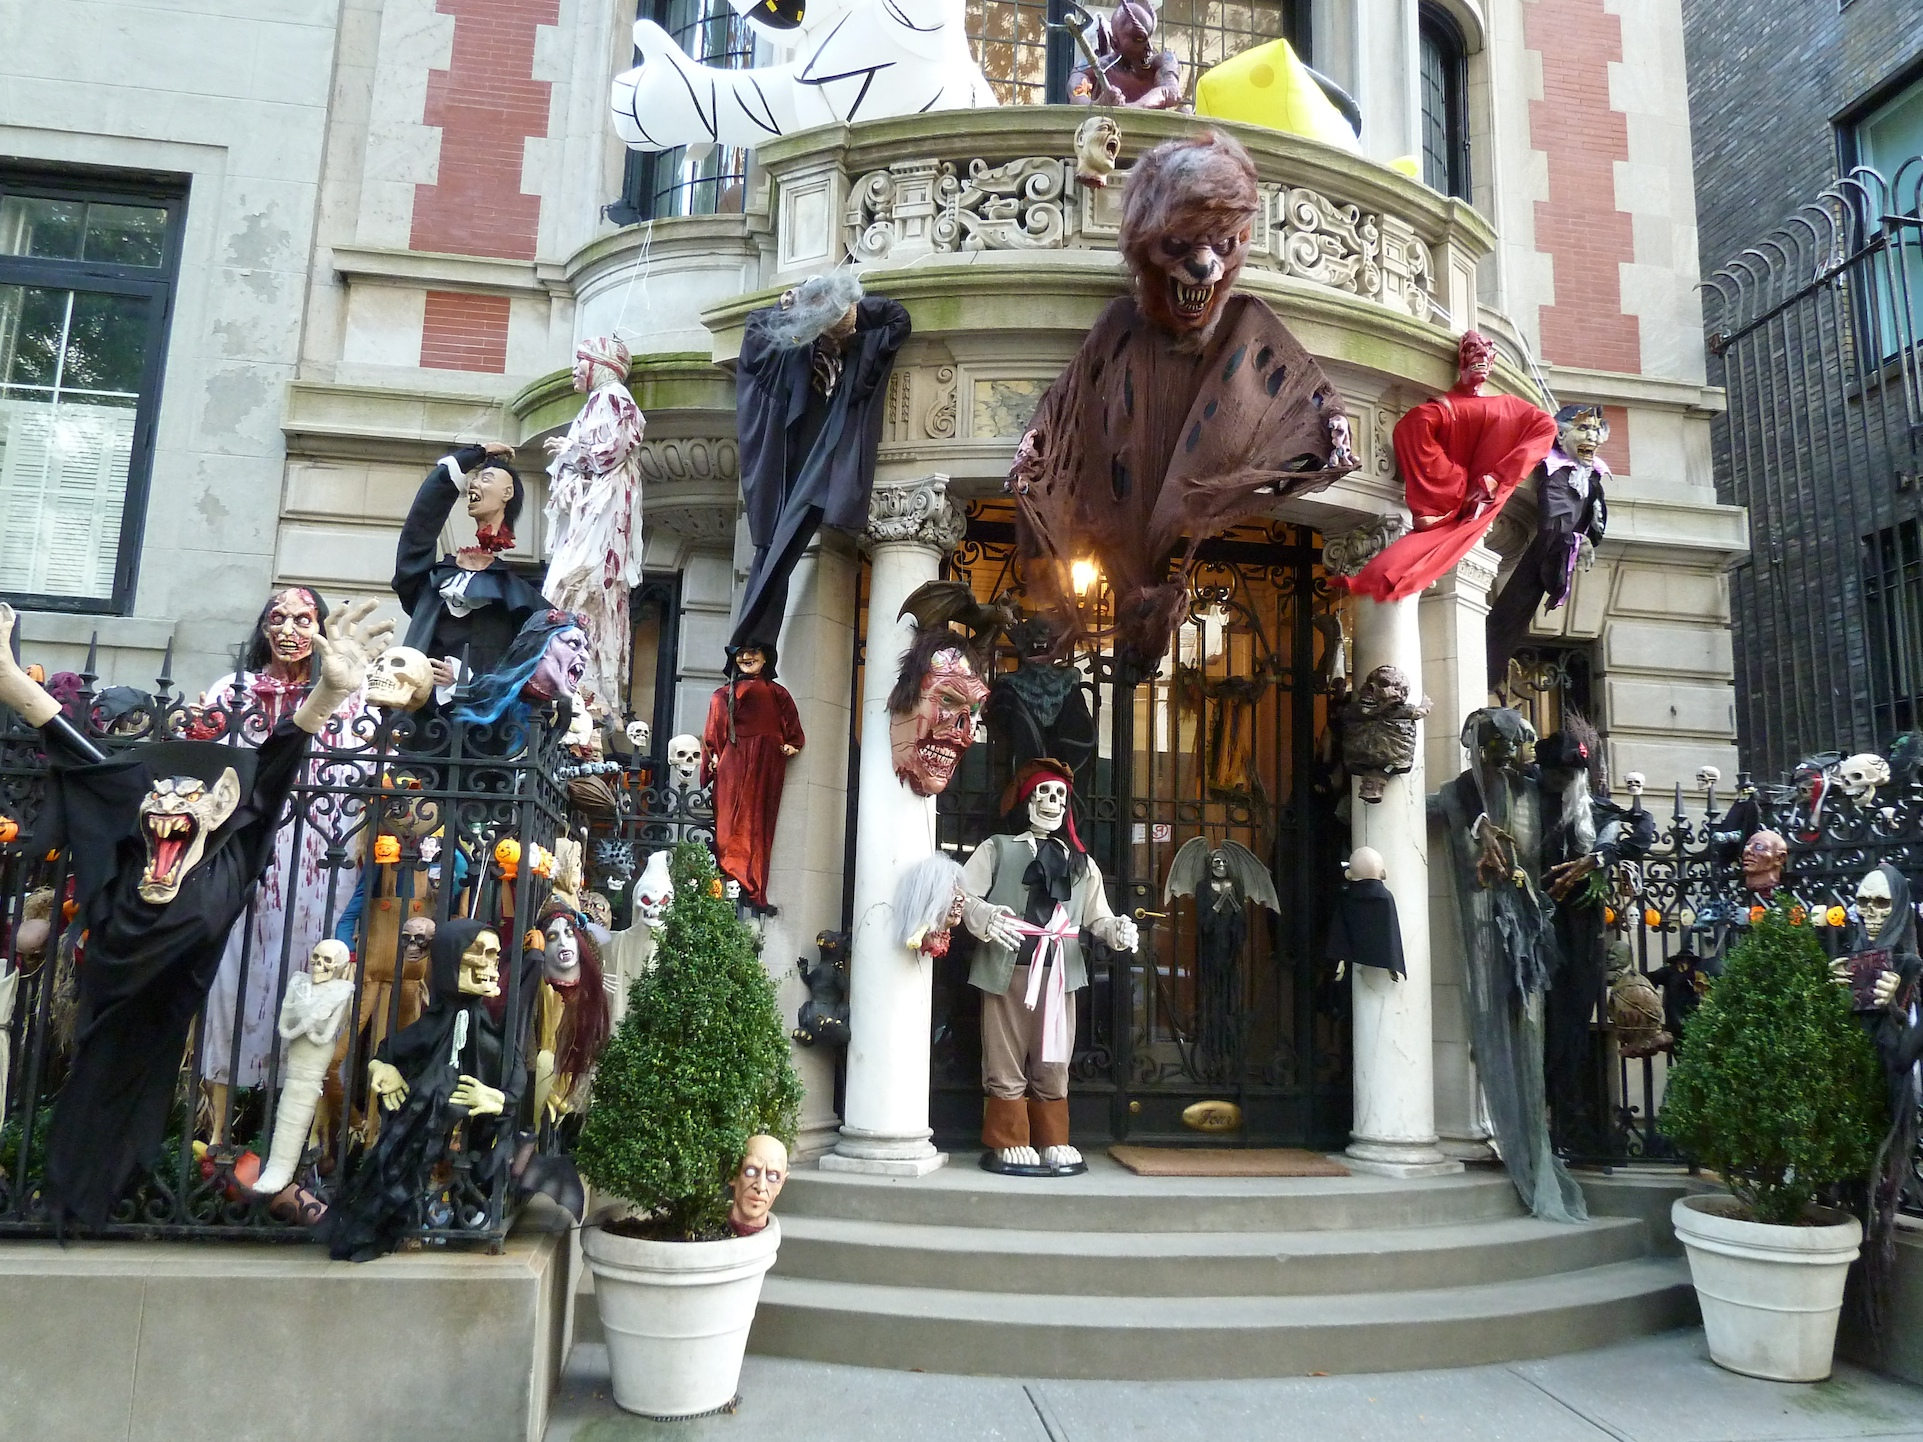 Truly Spooktacular Halloween decorations on this upper East side Manhatten house.